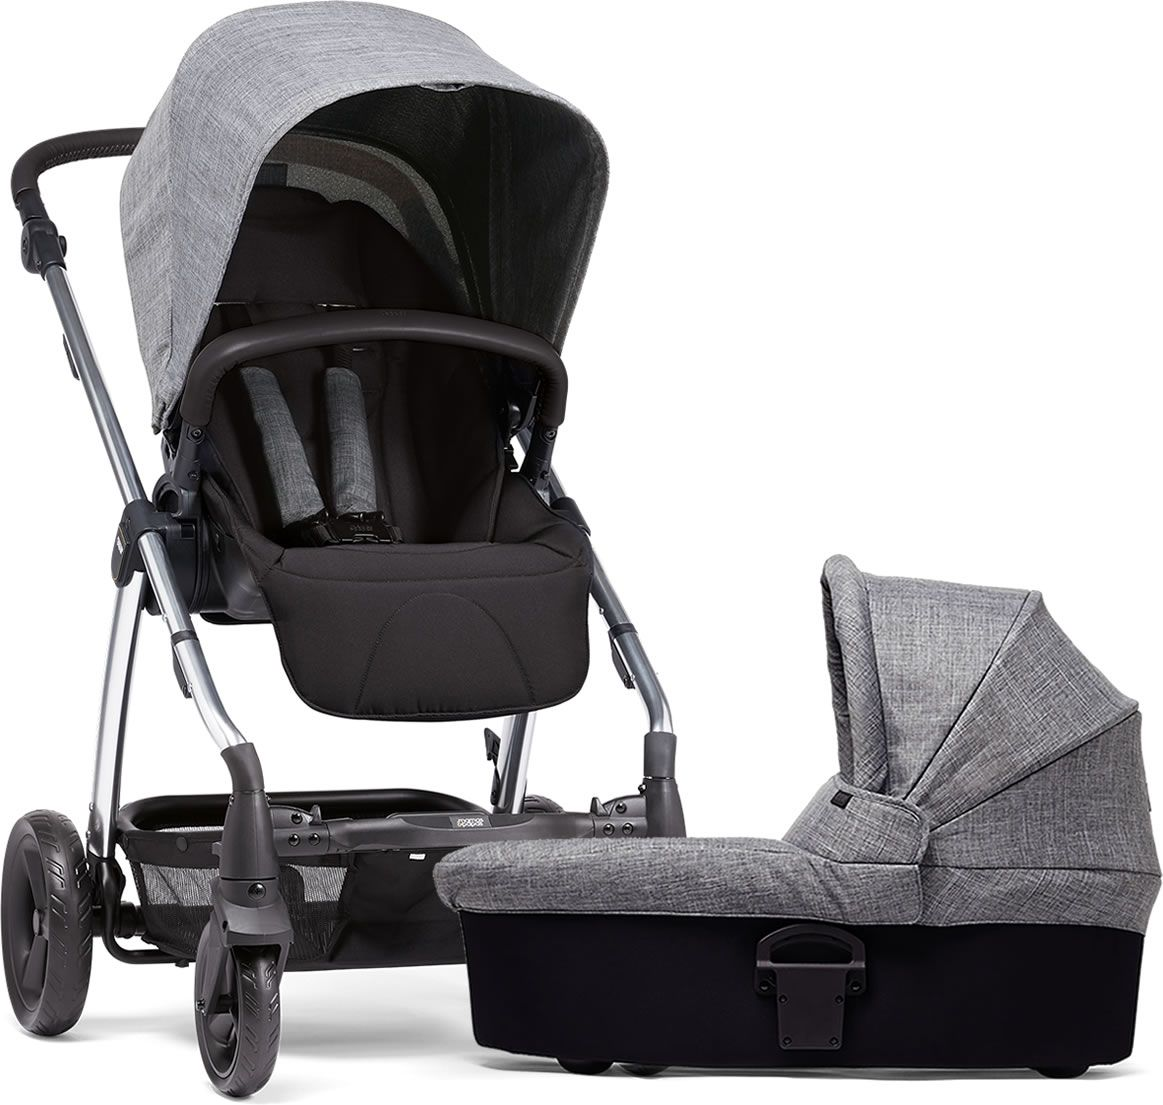 Universal Raincover To Fit Mamas And Papas   Urbo Carrycot New quality